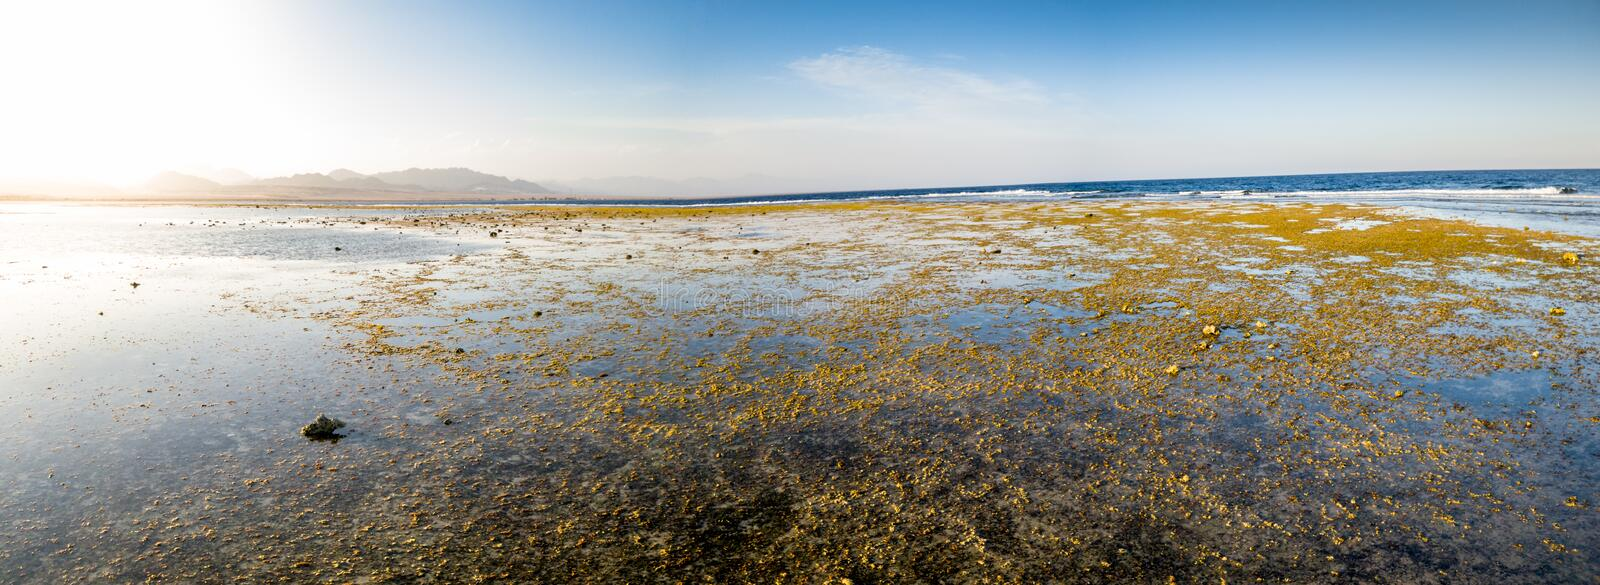 Panoramic photo of corals and rocks on the ocean coast. Mountains and blue sky on the background royalty free stock photo